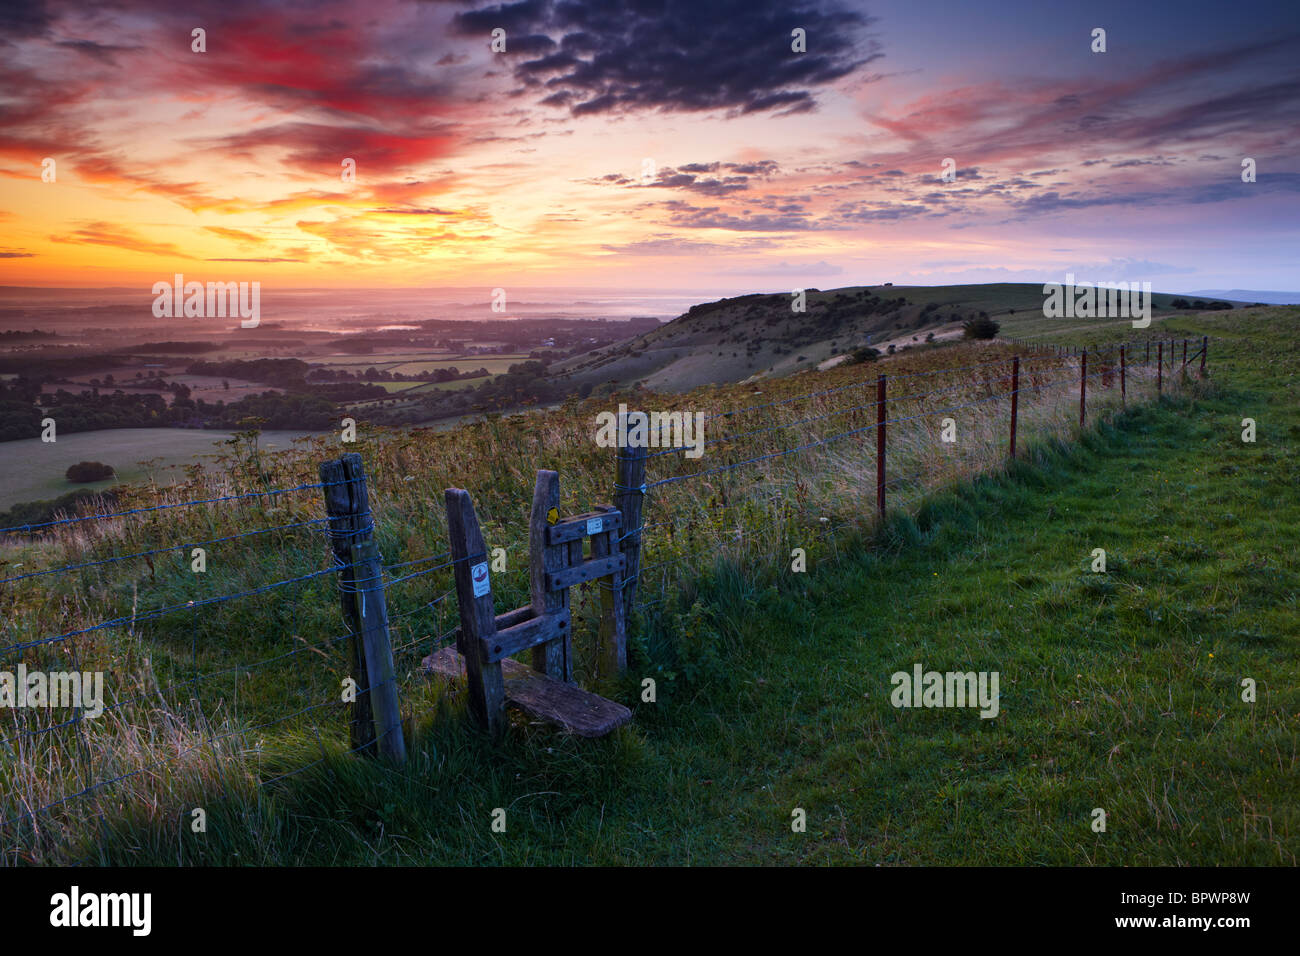 Views from Ditching Beacon along the South Downs Way at dawn - Stock Image